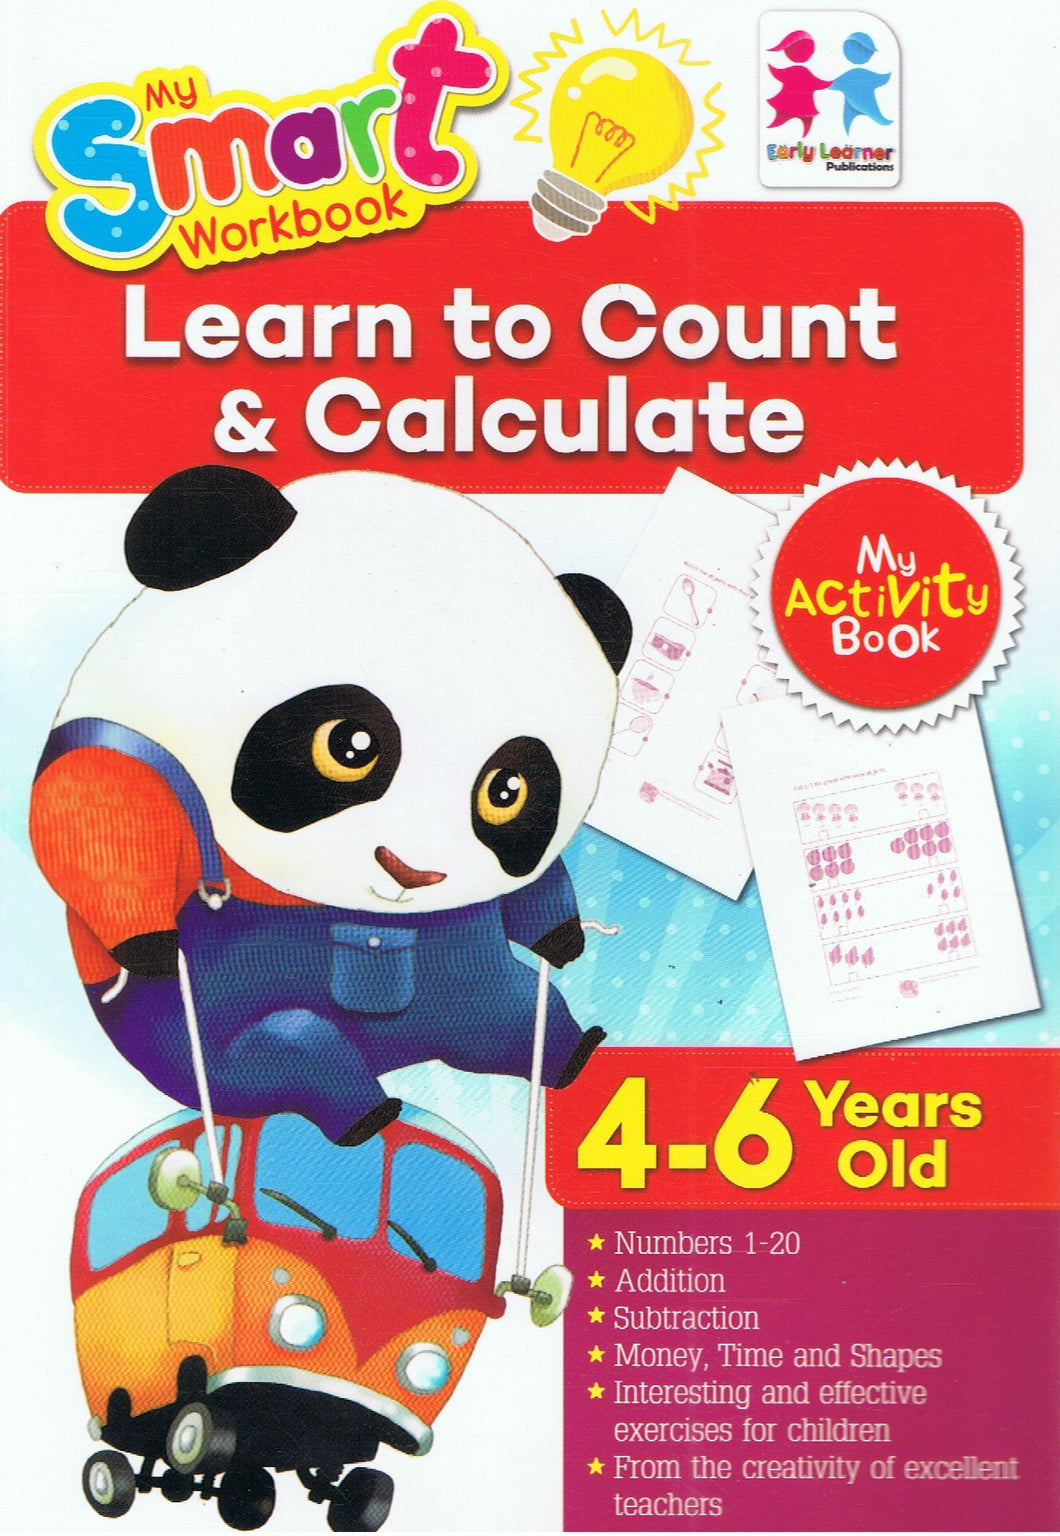 Early Learner-My Smart Workbook (My Activity Book): Learn To Count & Calculate 4-6 Year Old-9789833322374-BukuDBP.com